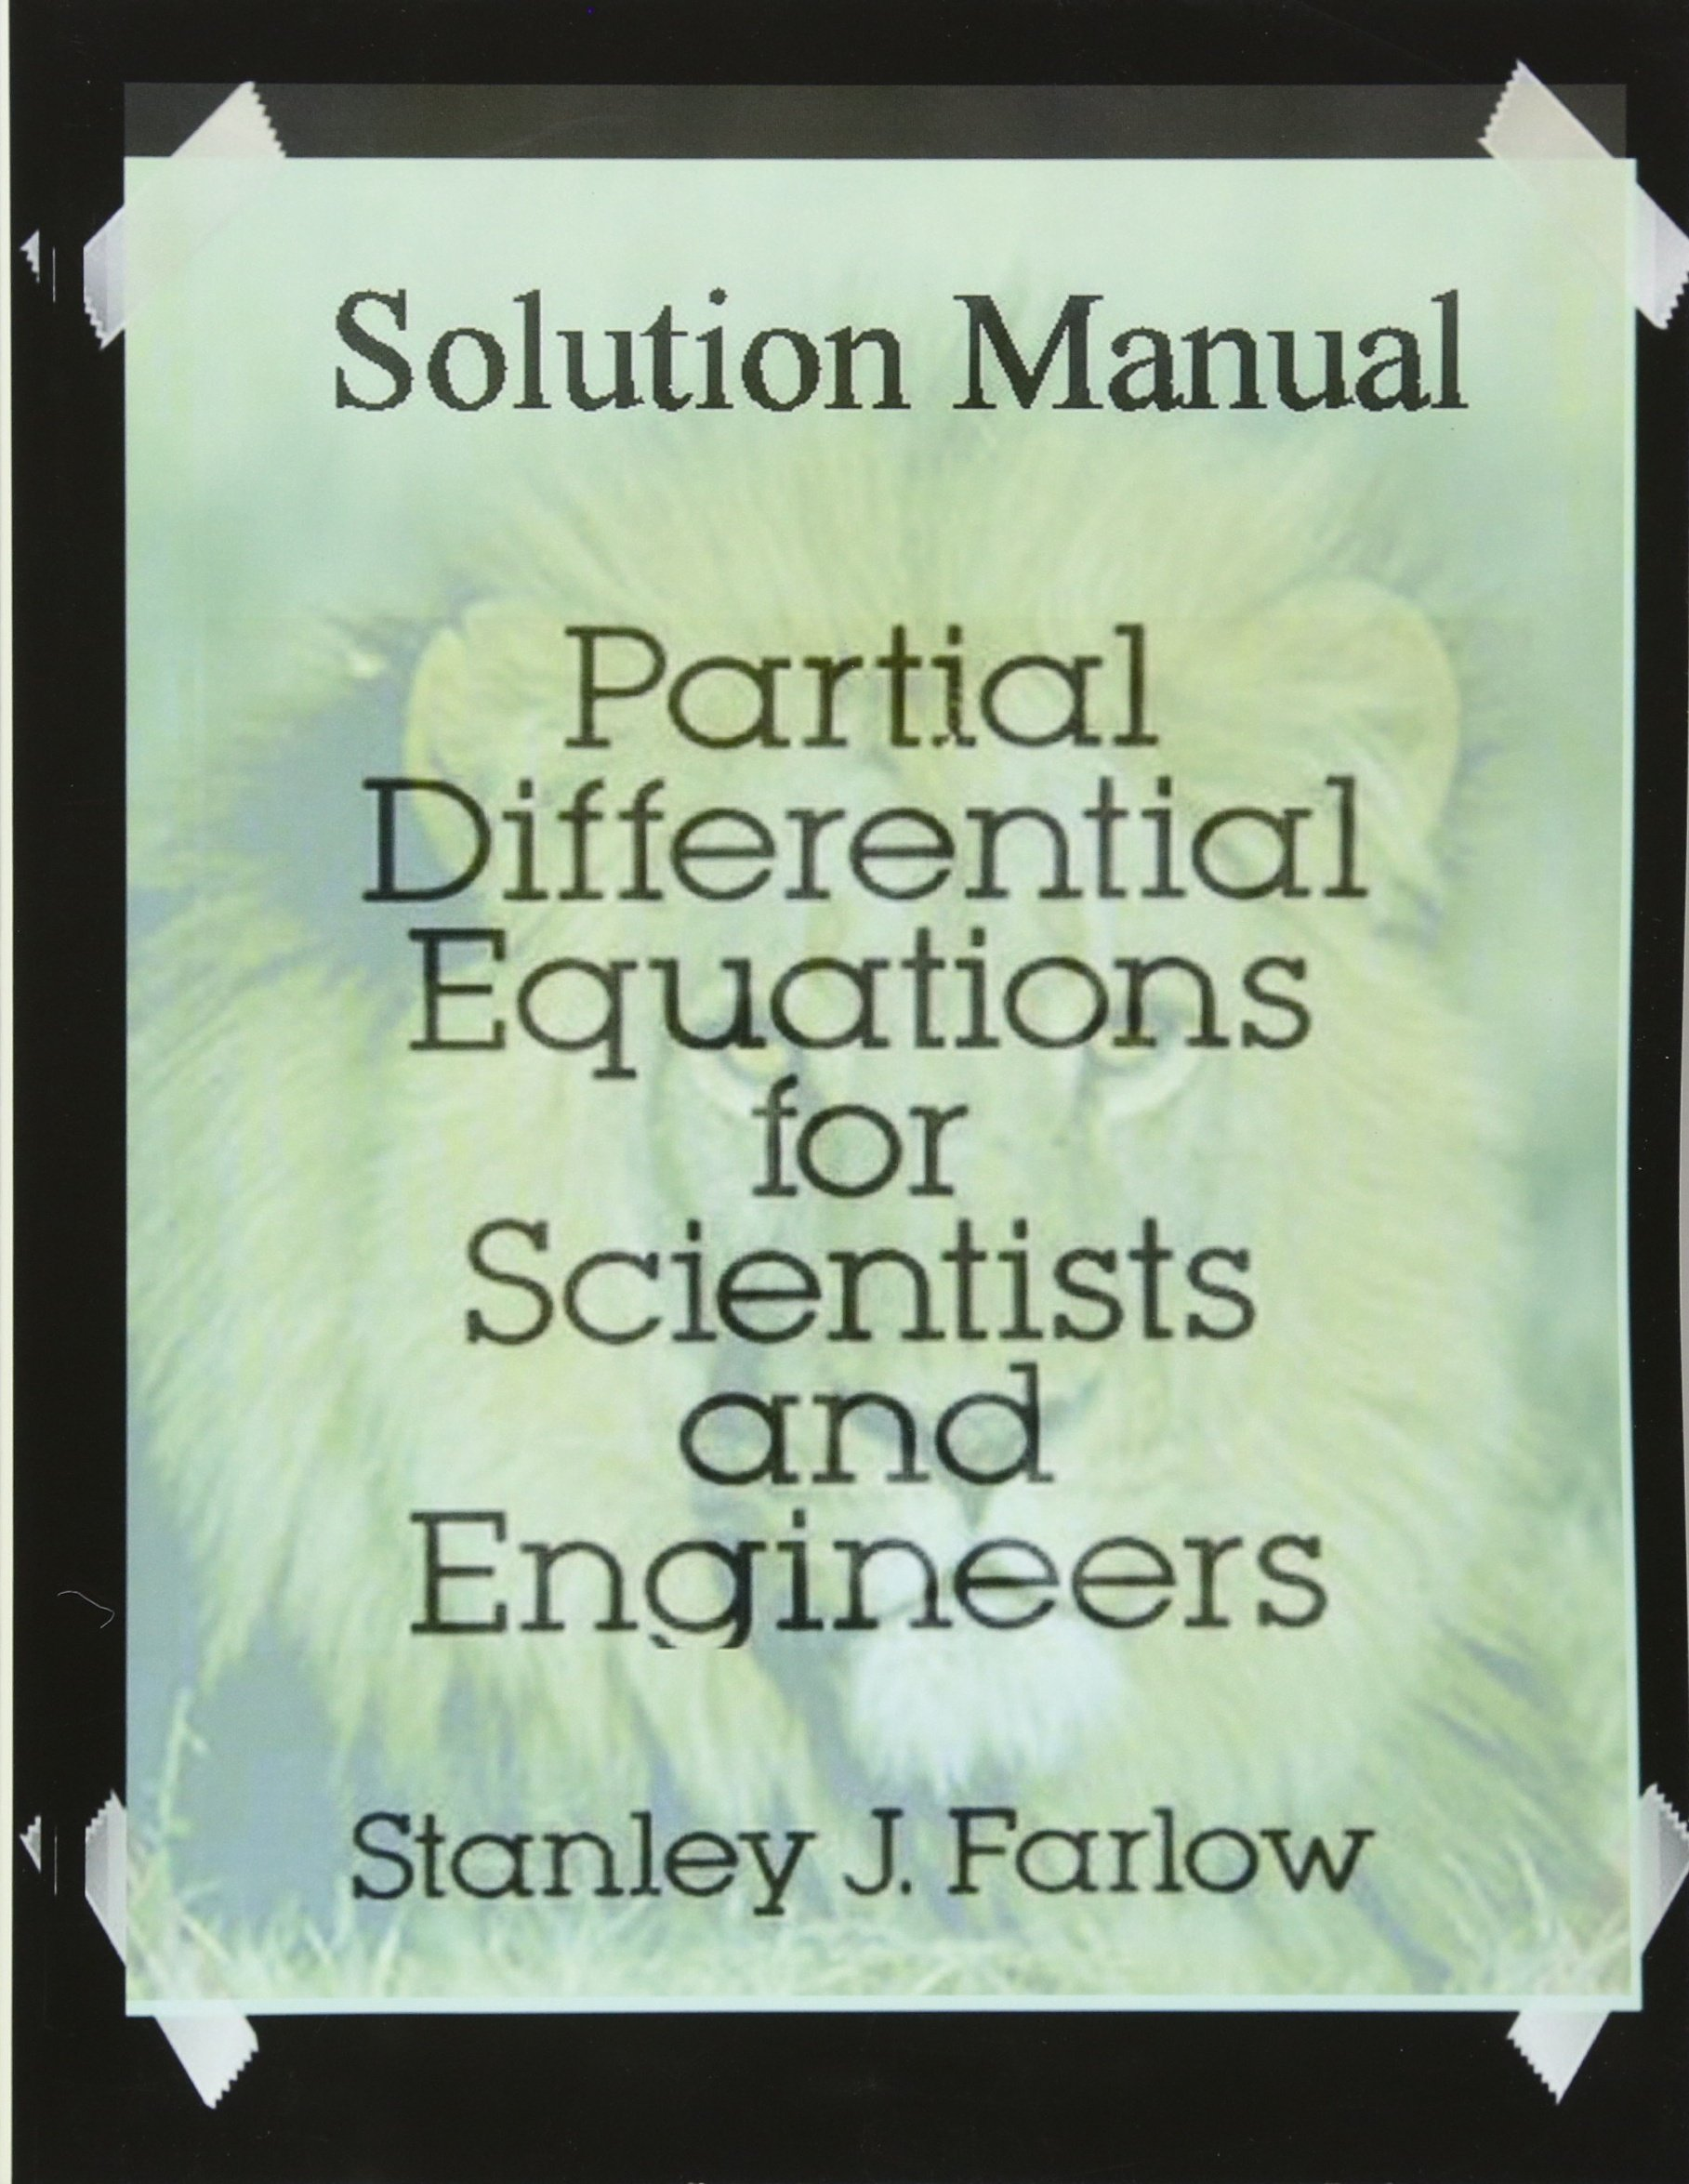 Solution Manual: Partial Differential Equations for Scientists and  Engineers: S. J. Farlow: 9781541267343: Amazon.com: Books